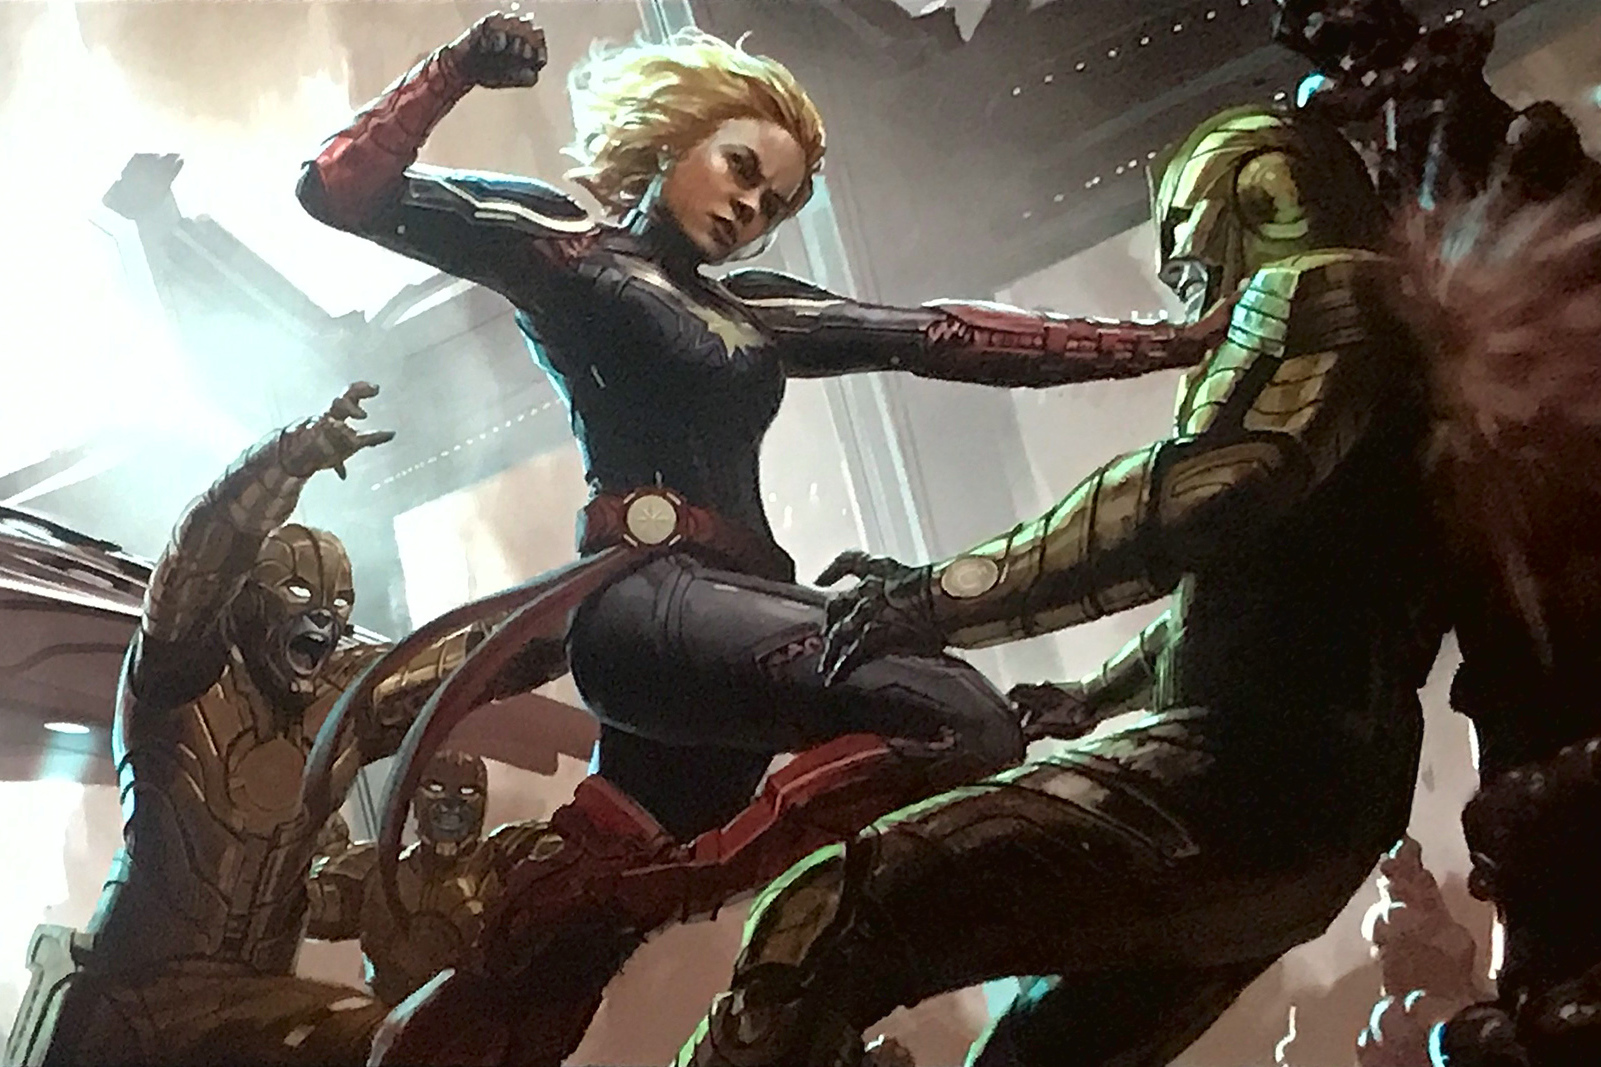 5. The Skrulls And The MCU